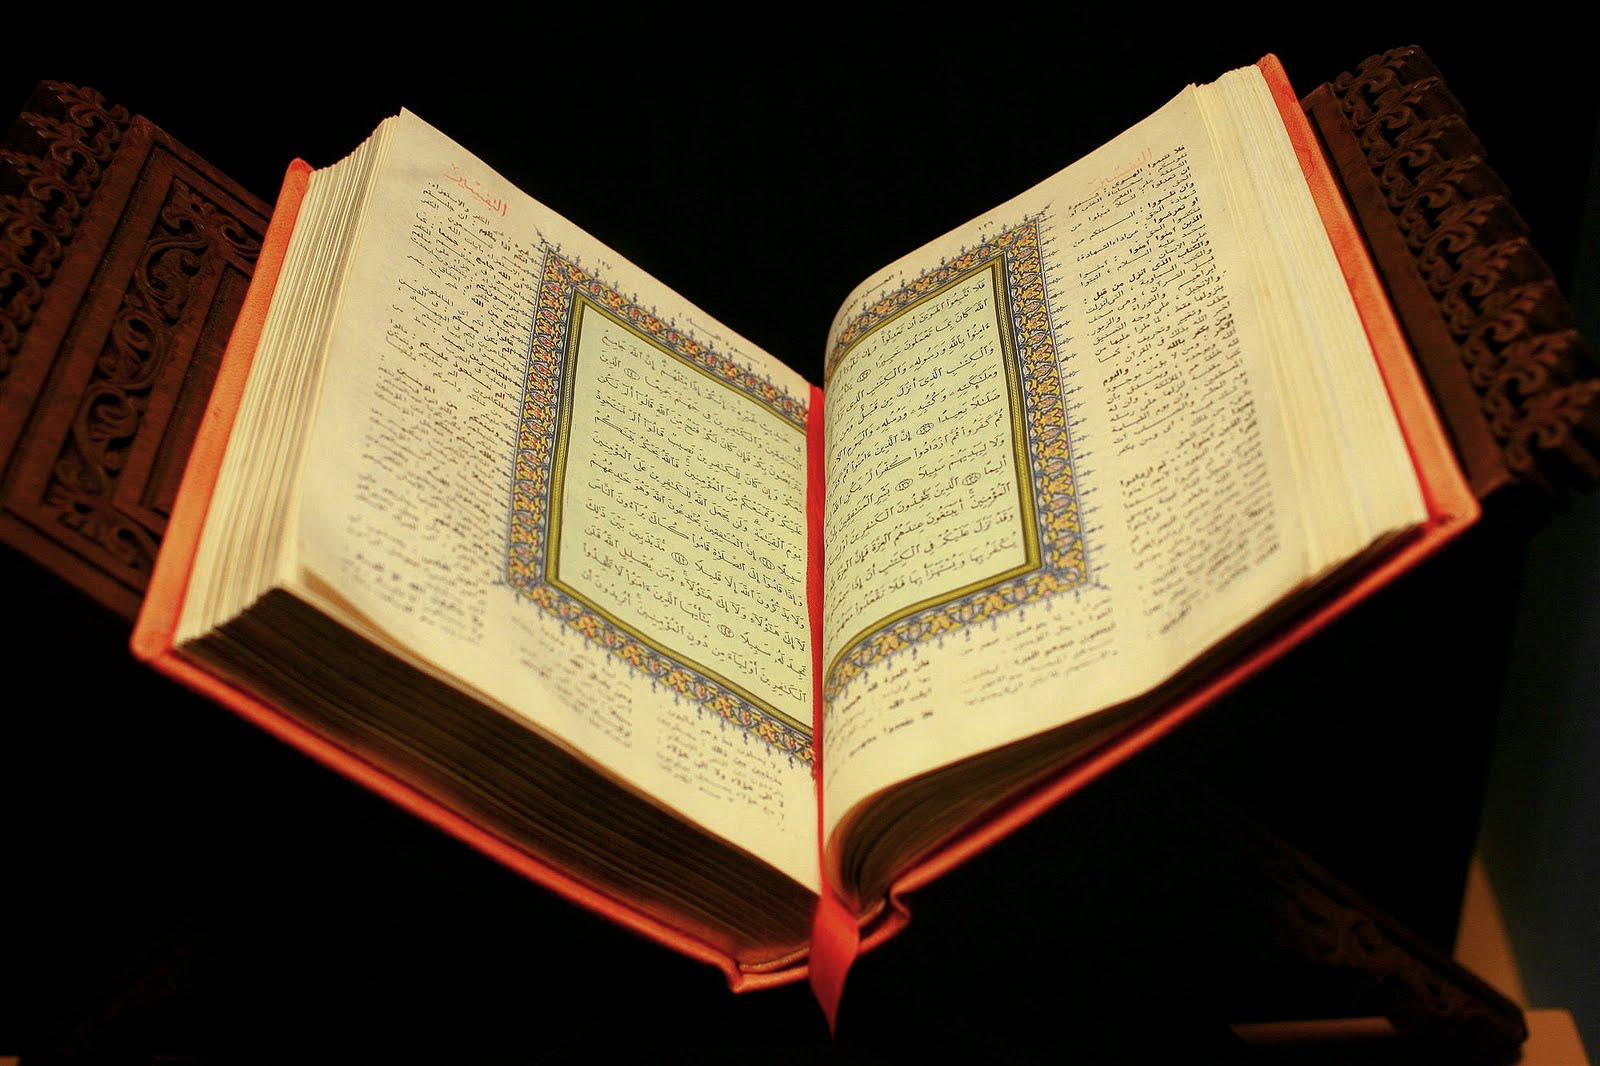 What is the Qur'an? Upon whom was the Qur'an revealed? What are the goals of the Qur'an? What is the Qur'an about? Who is the author of the Qur'an?